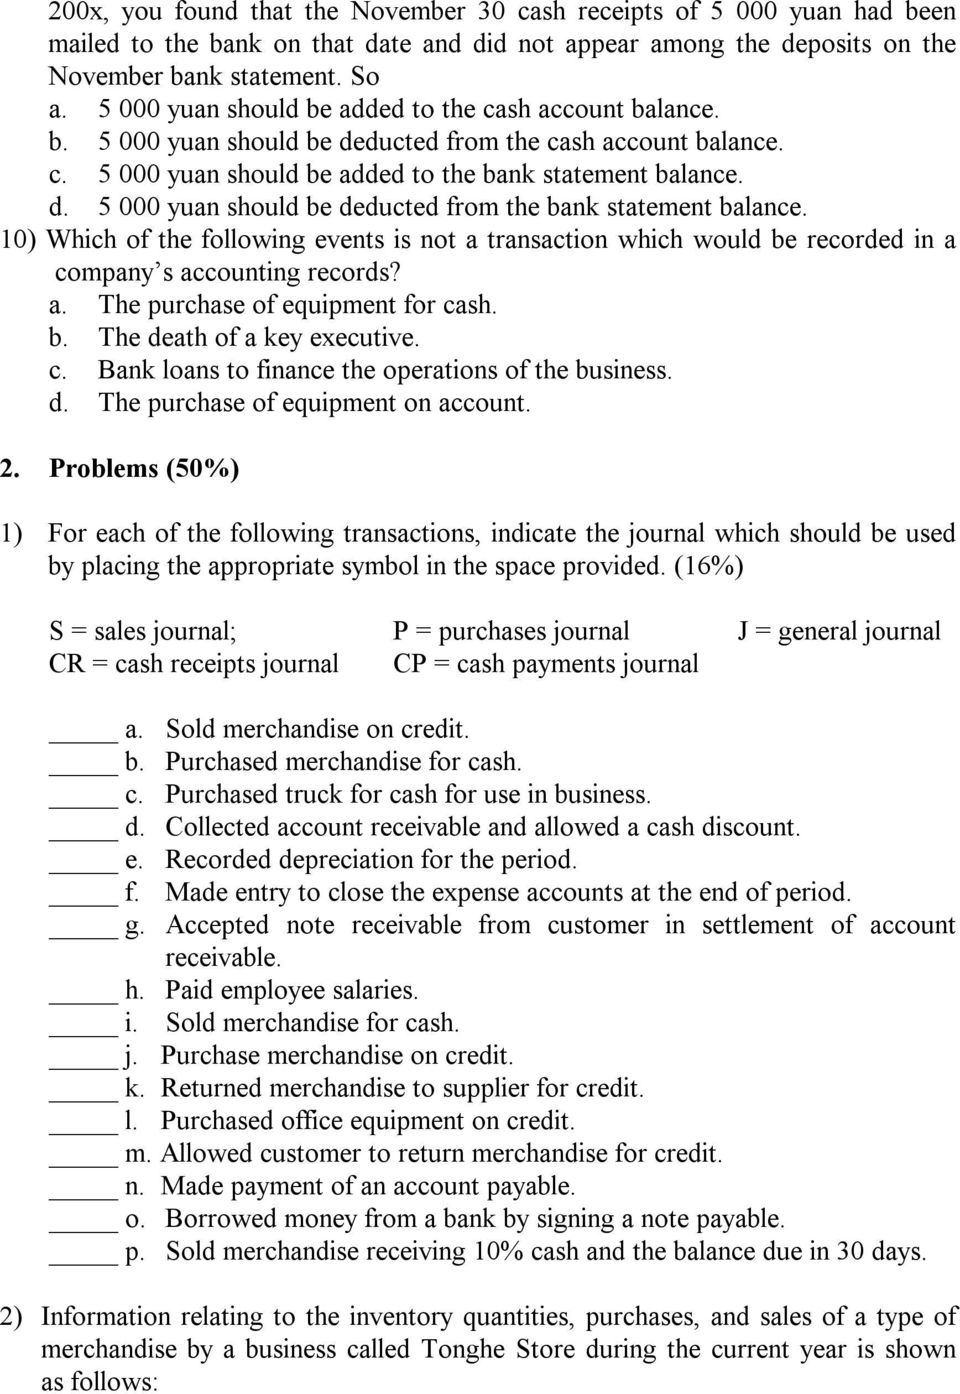 10) Which of the following events is not a transaction which would be recorded in a company s accounting records? a. The purchase of equipment for cash. b. The death of a key executive. c. Bank loans to finance the operations of the business.